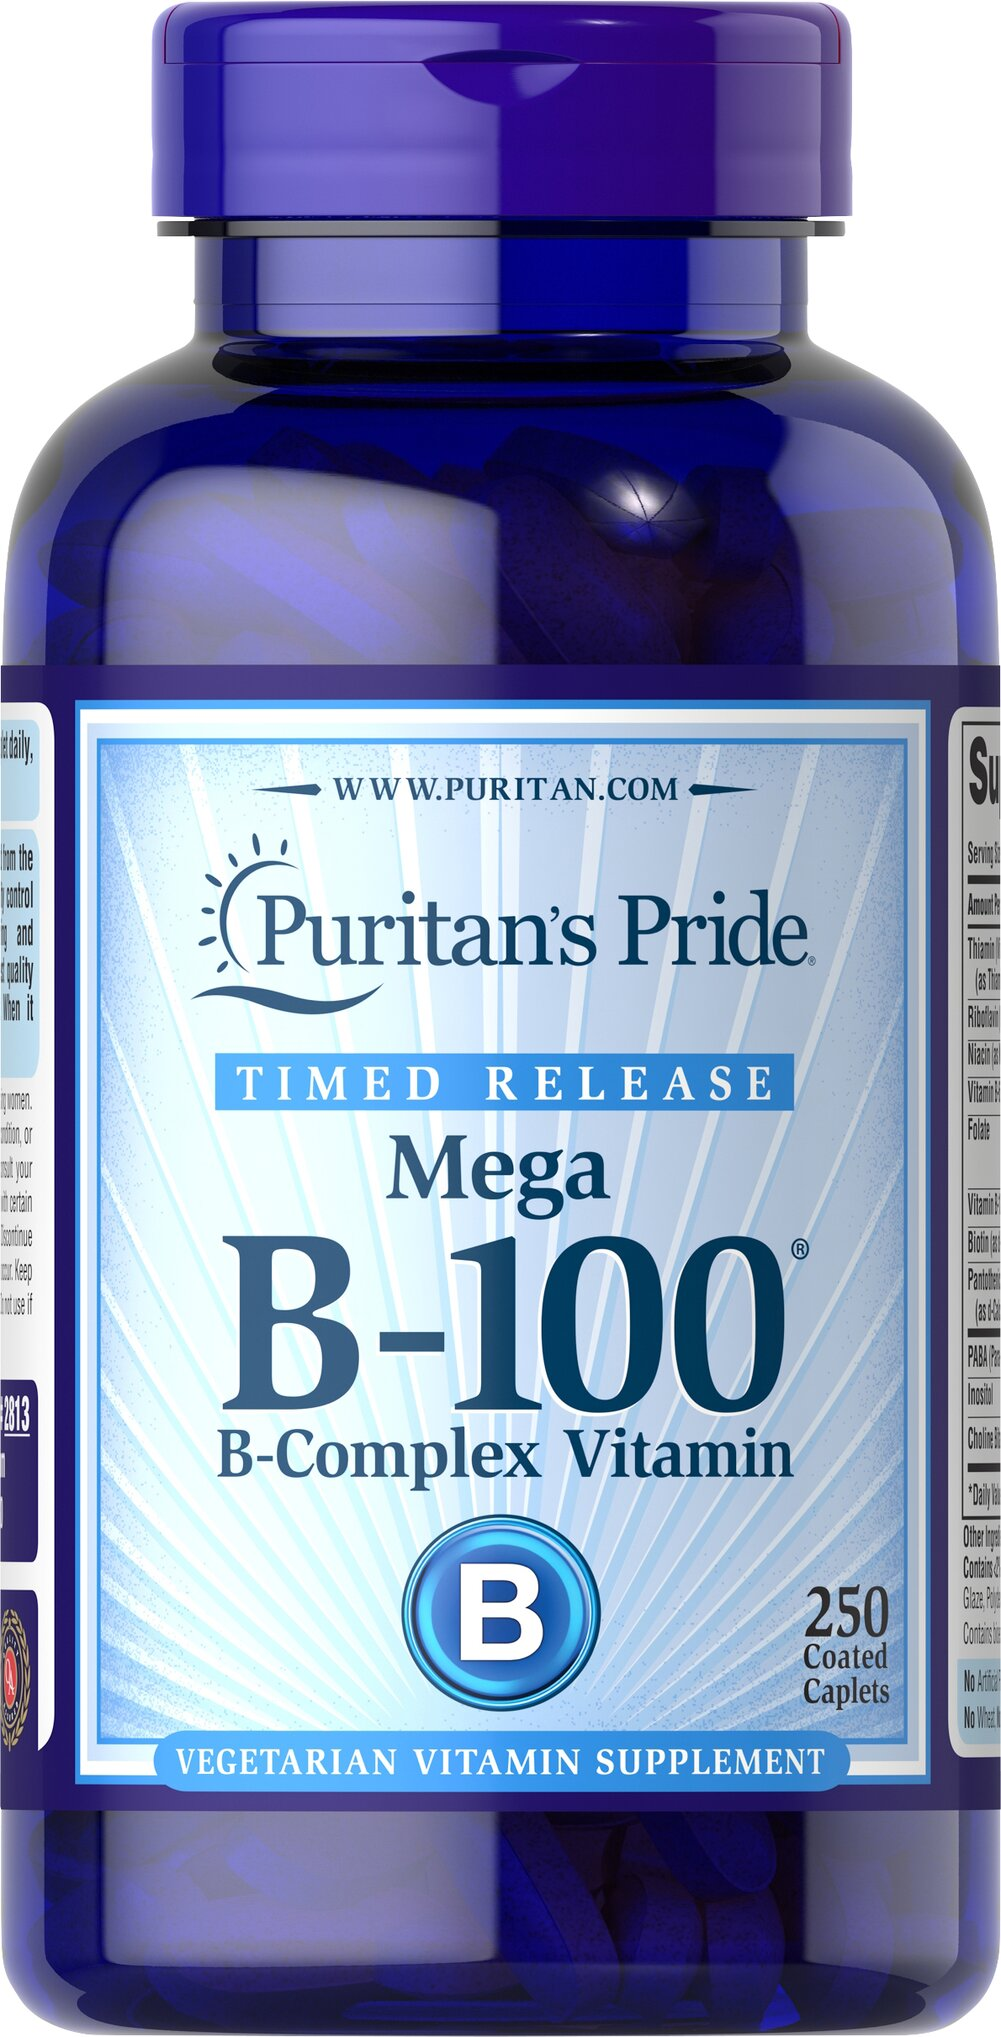 Vitamin B-100® Complex Timed Release <p>Each nutrient in the Vitamin B-100® Complex performs a unique role in maintaining proper metabolic functioning and is essential for well being.** When taken together in a complex formula, the B Vitamins help to maintain the health of the nervous system, skin, eyes and hair.** This product is specially formulated to provide a gradual release of vitamins over a prolonged period of time.</p>  250 Tablets 100 mg $44.39